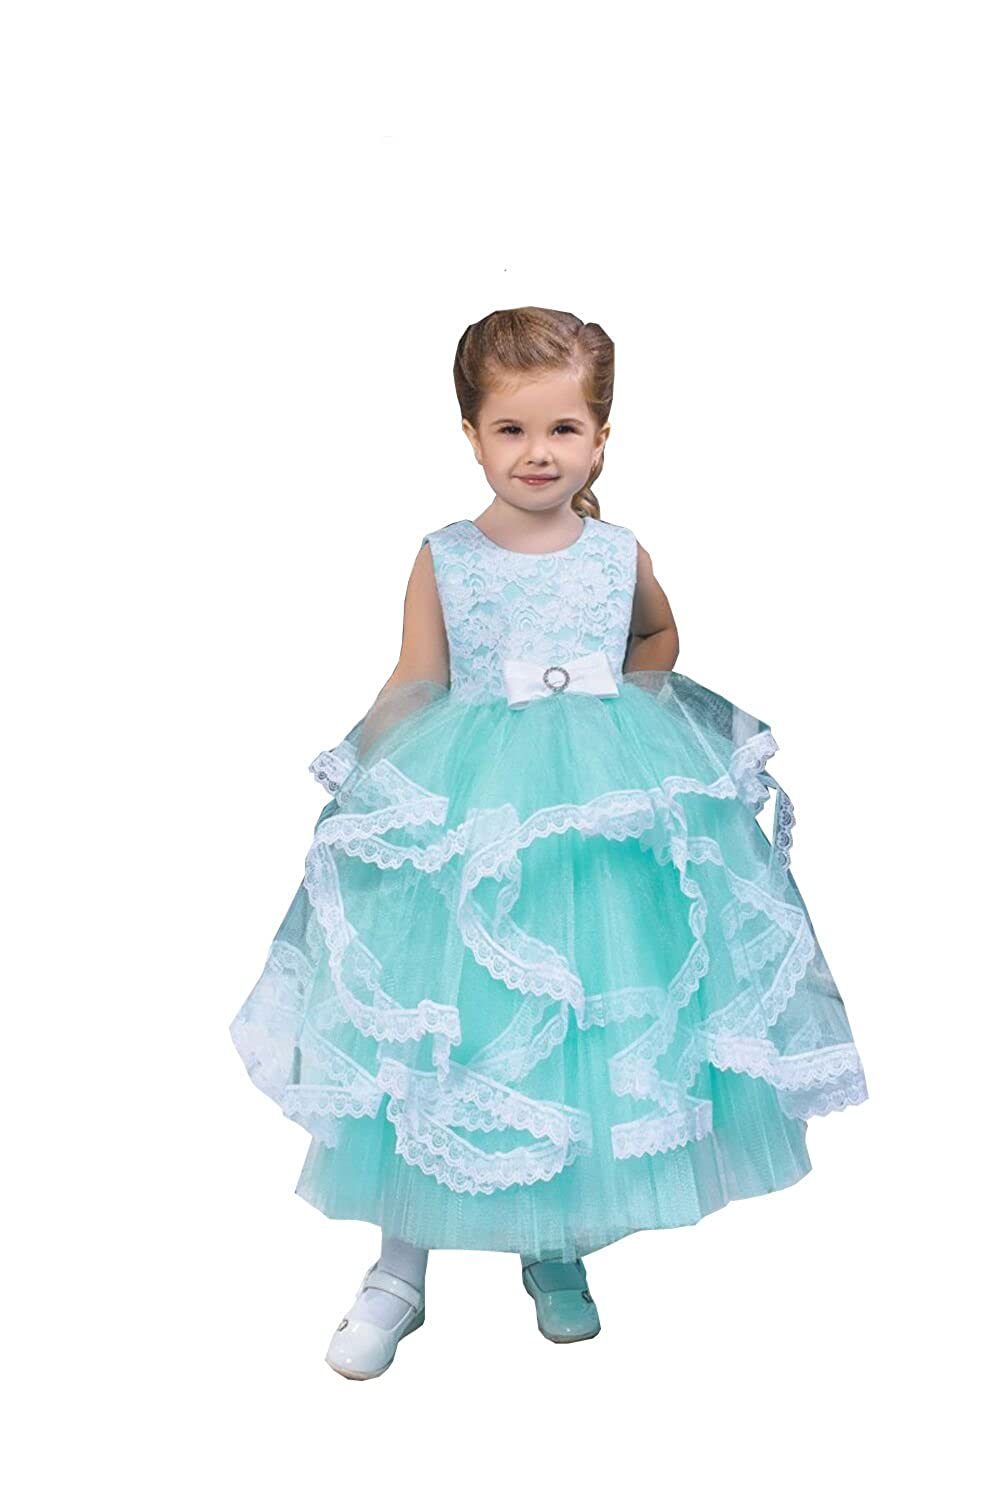 Banfvting Lace Ball Gonw Flower Girl Dress Ankle Length